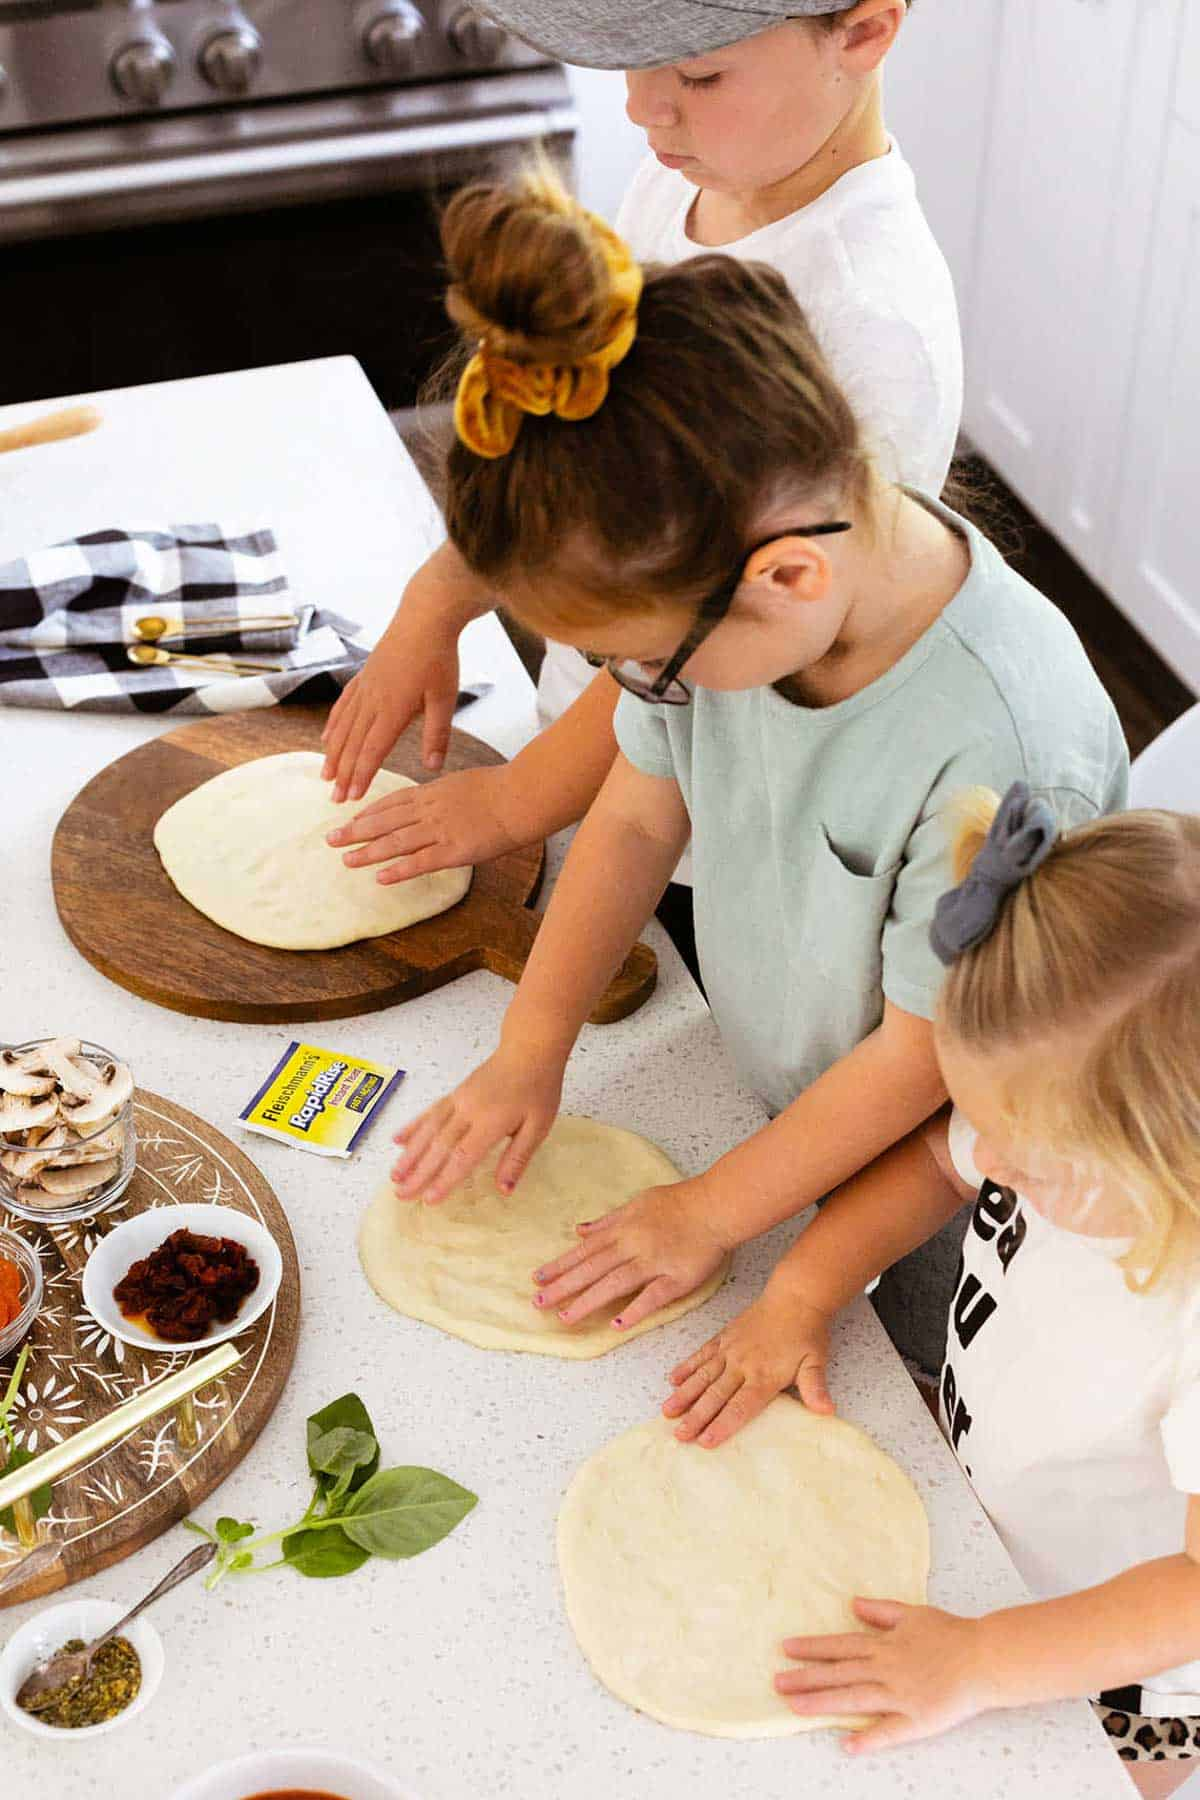 kids patting pizza dough on countertop